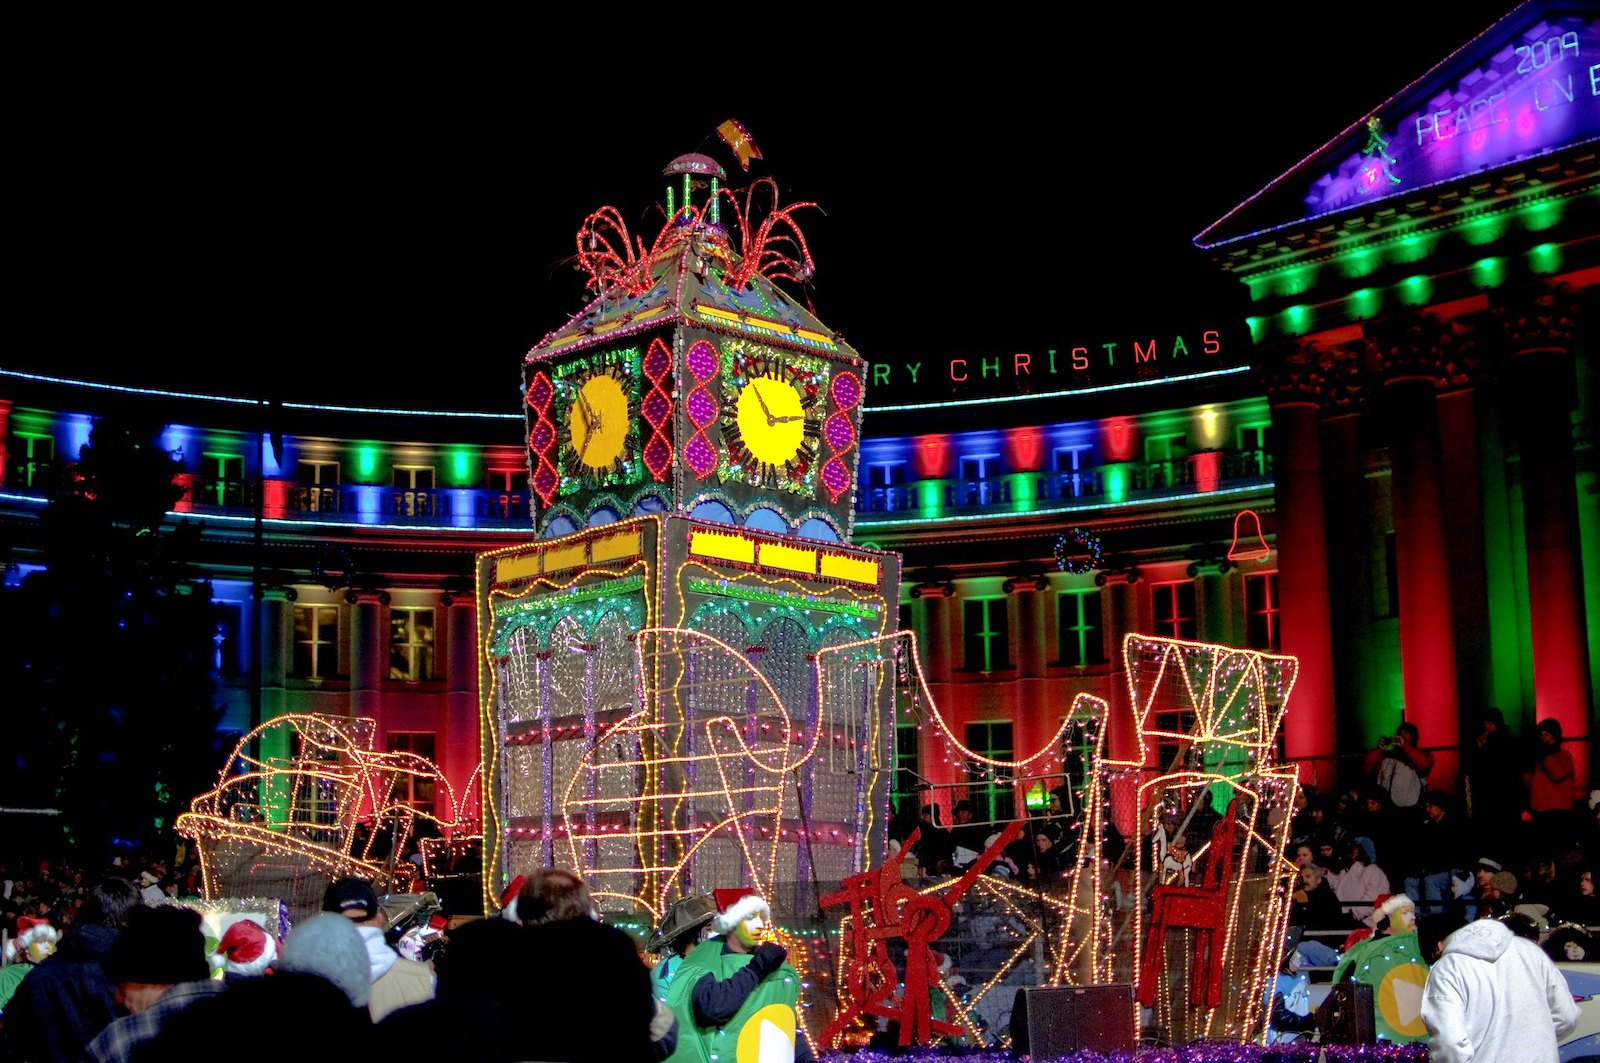 Image of a parade float and holiday lights and Denver's Parade of Lights in Colorado